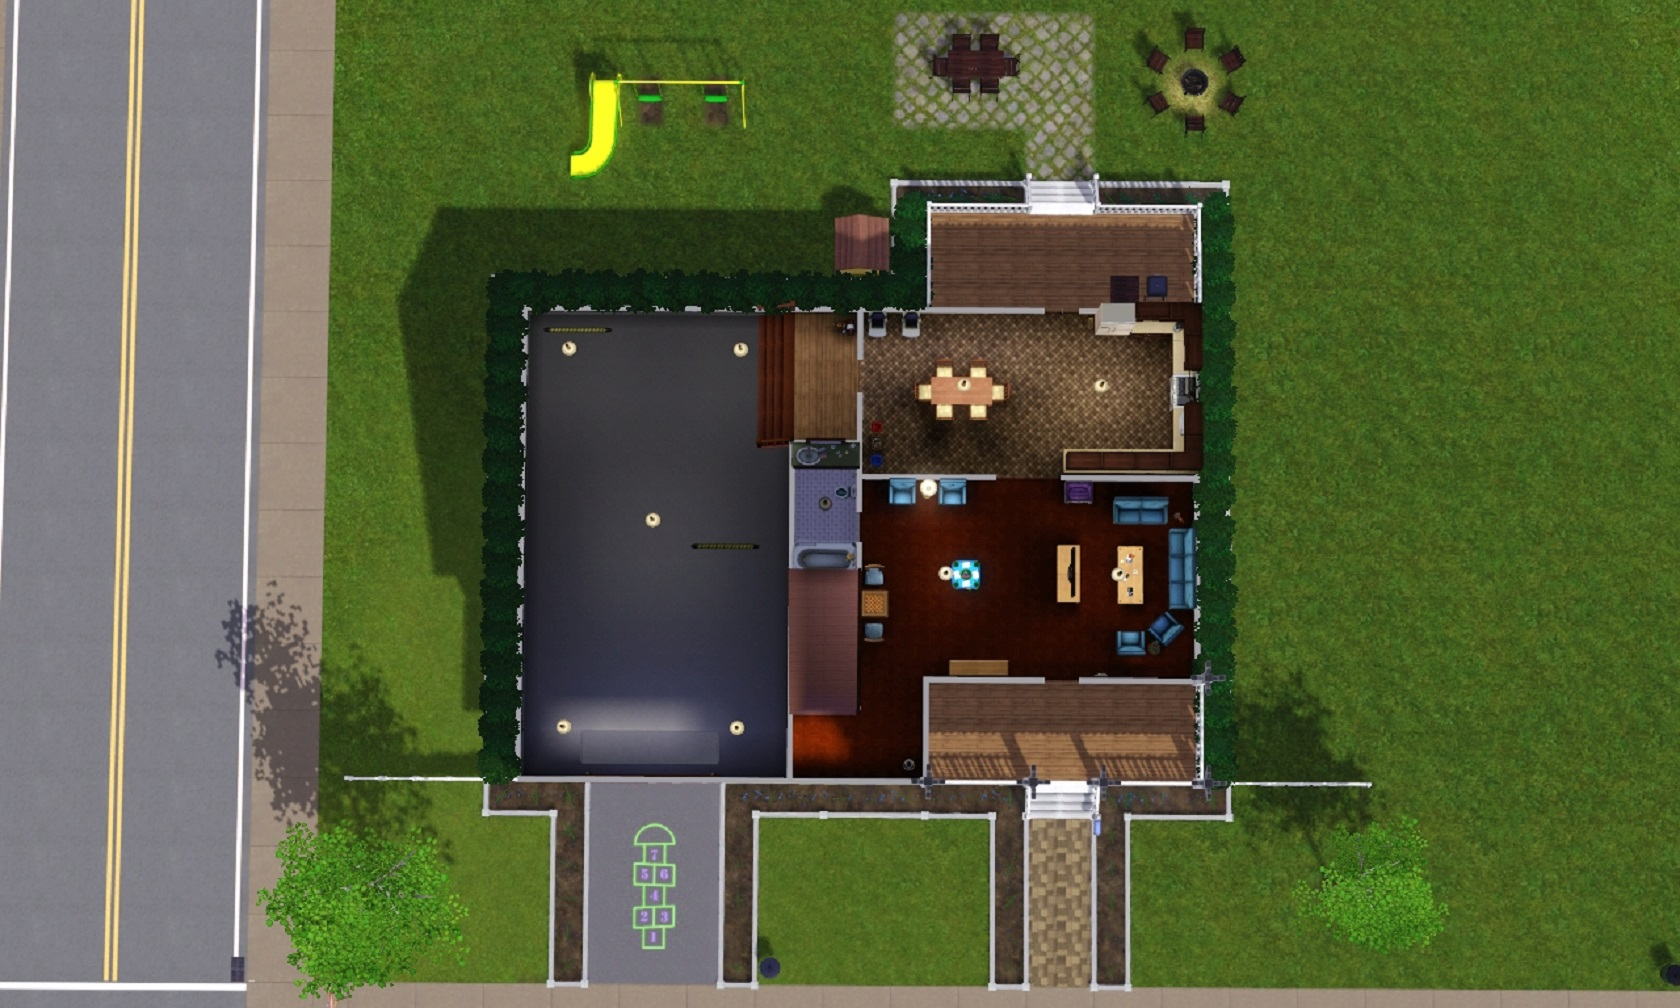 Constrain Floor Elevation Sims 4 : Mod the sims emerald acres